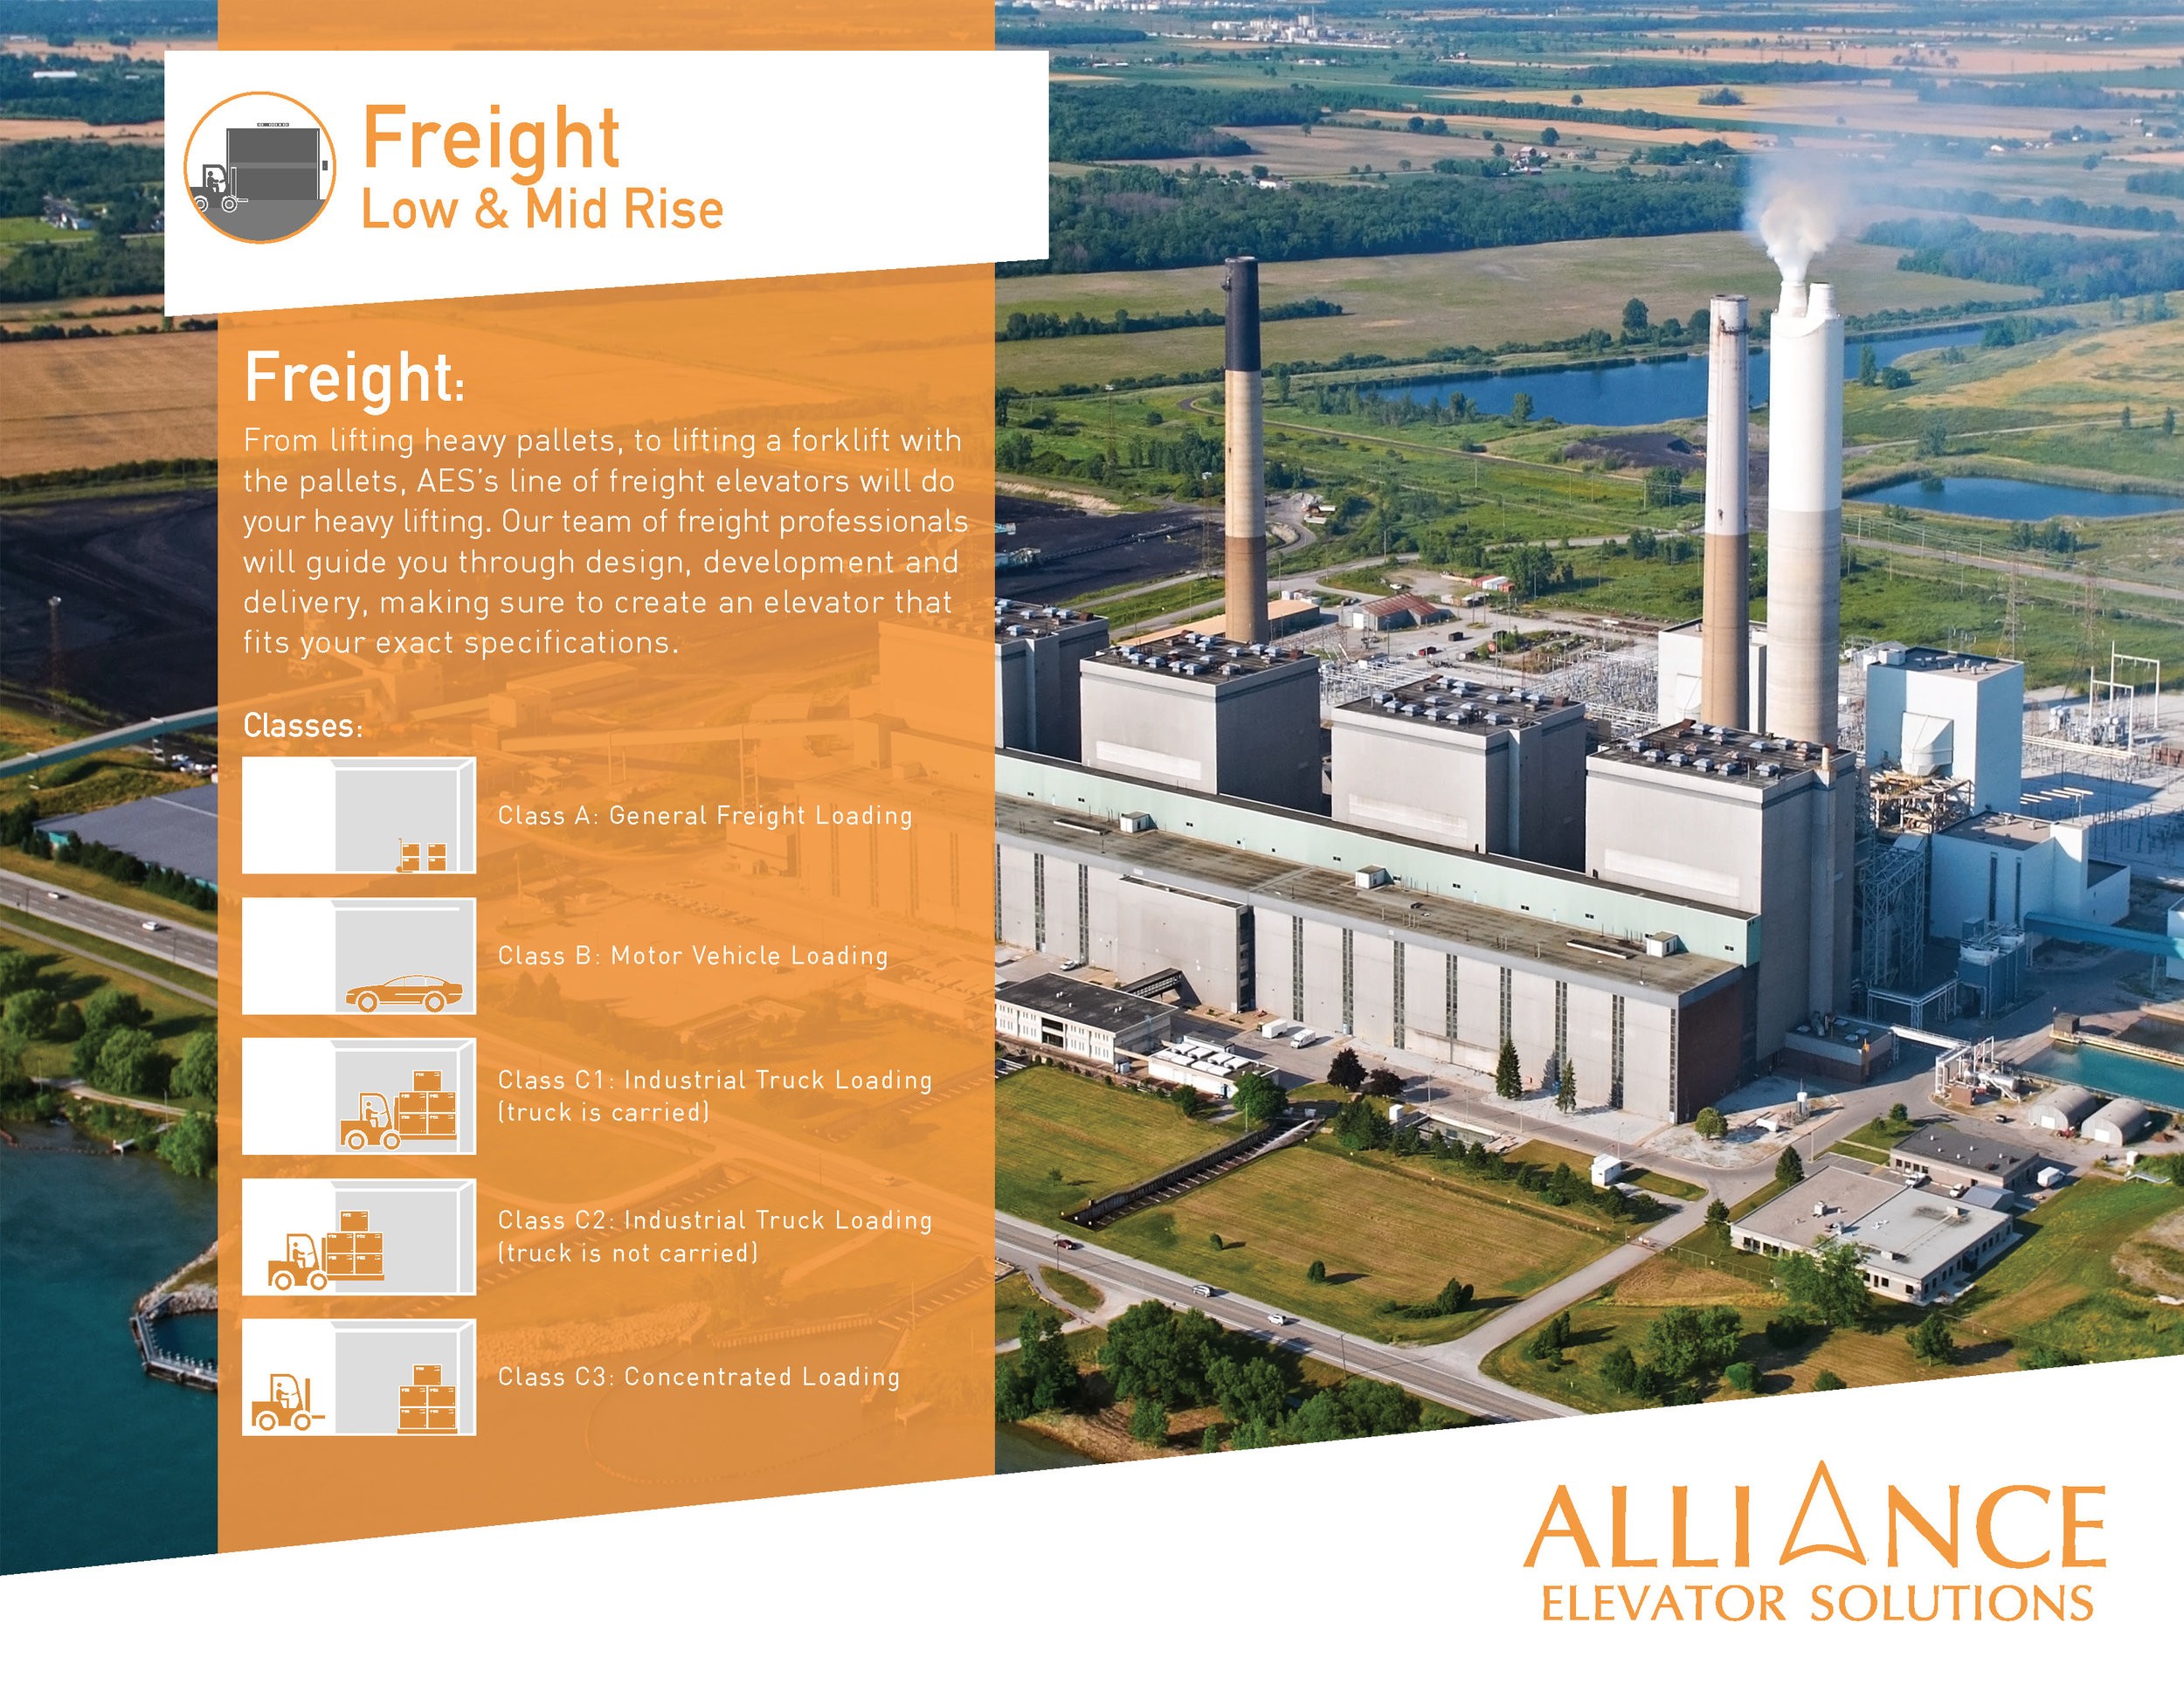 © ProArts Media - Alliance Elevator Solutions - Freight Cut Sheet_Page_1.jpg